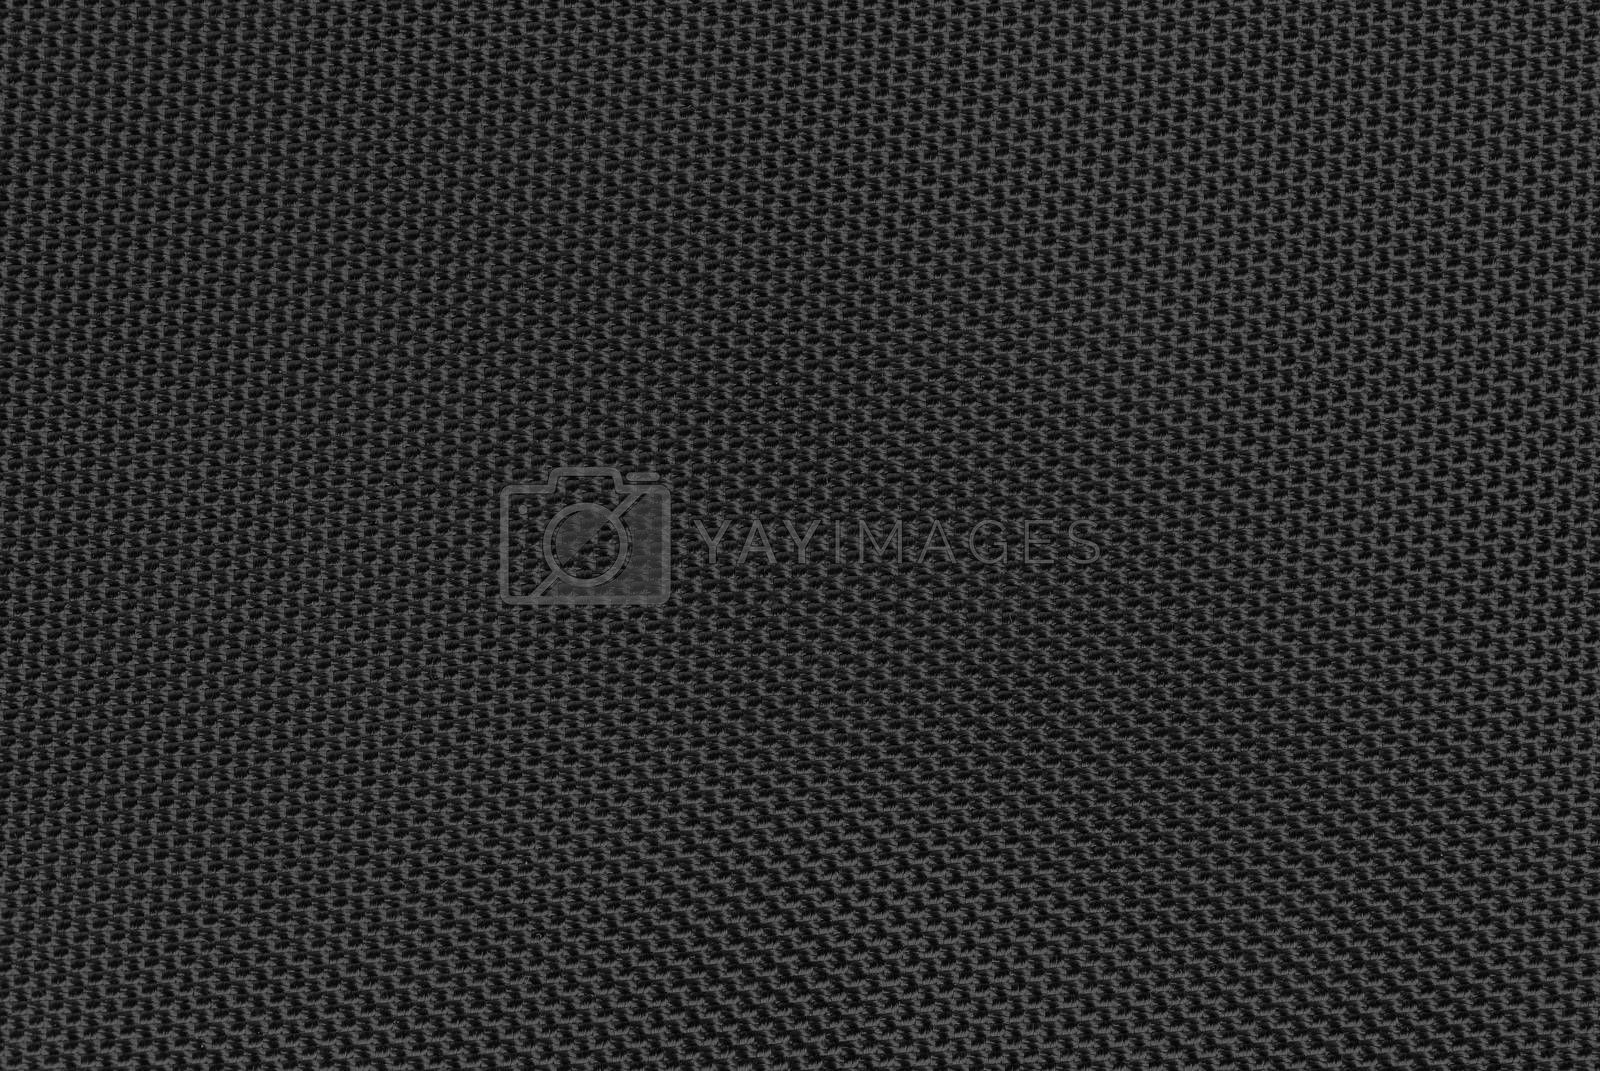 Background or texture made of black woven fiber